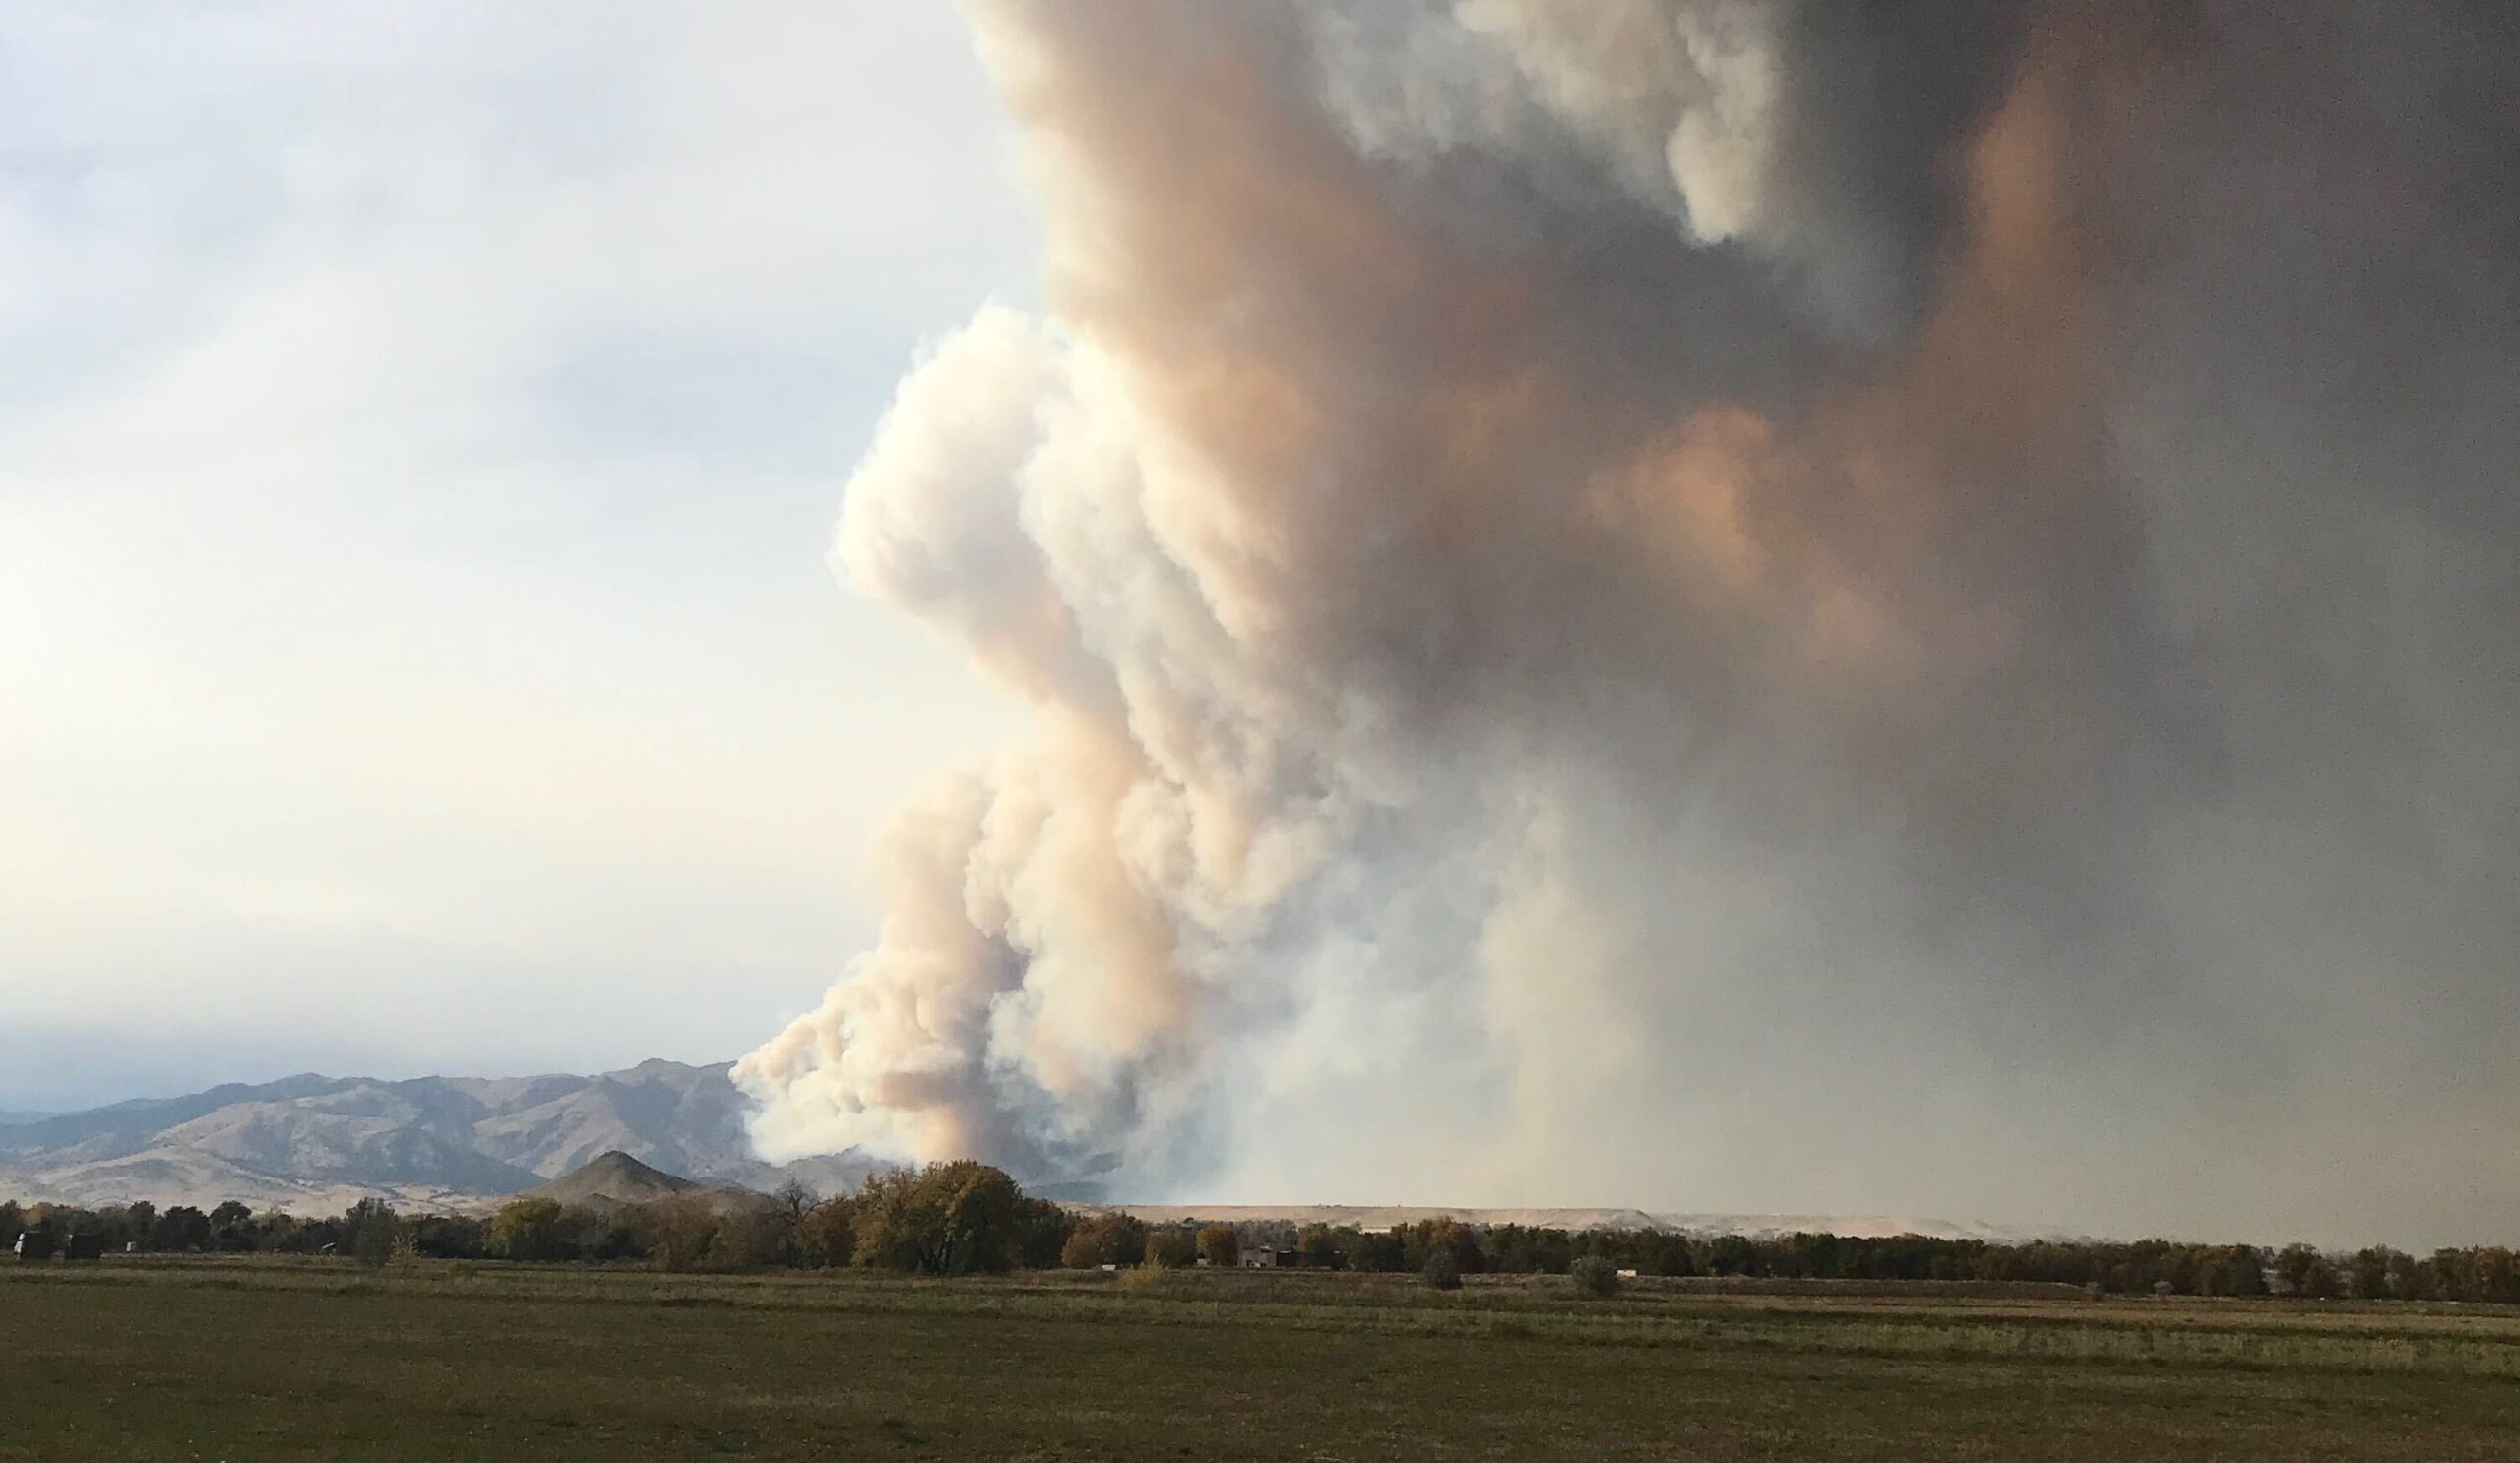 The Calwood fire ignited October 17, 2020, in the foothills above Boulder. This view is from Longmont.